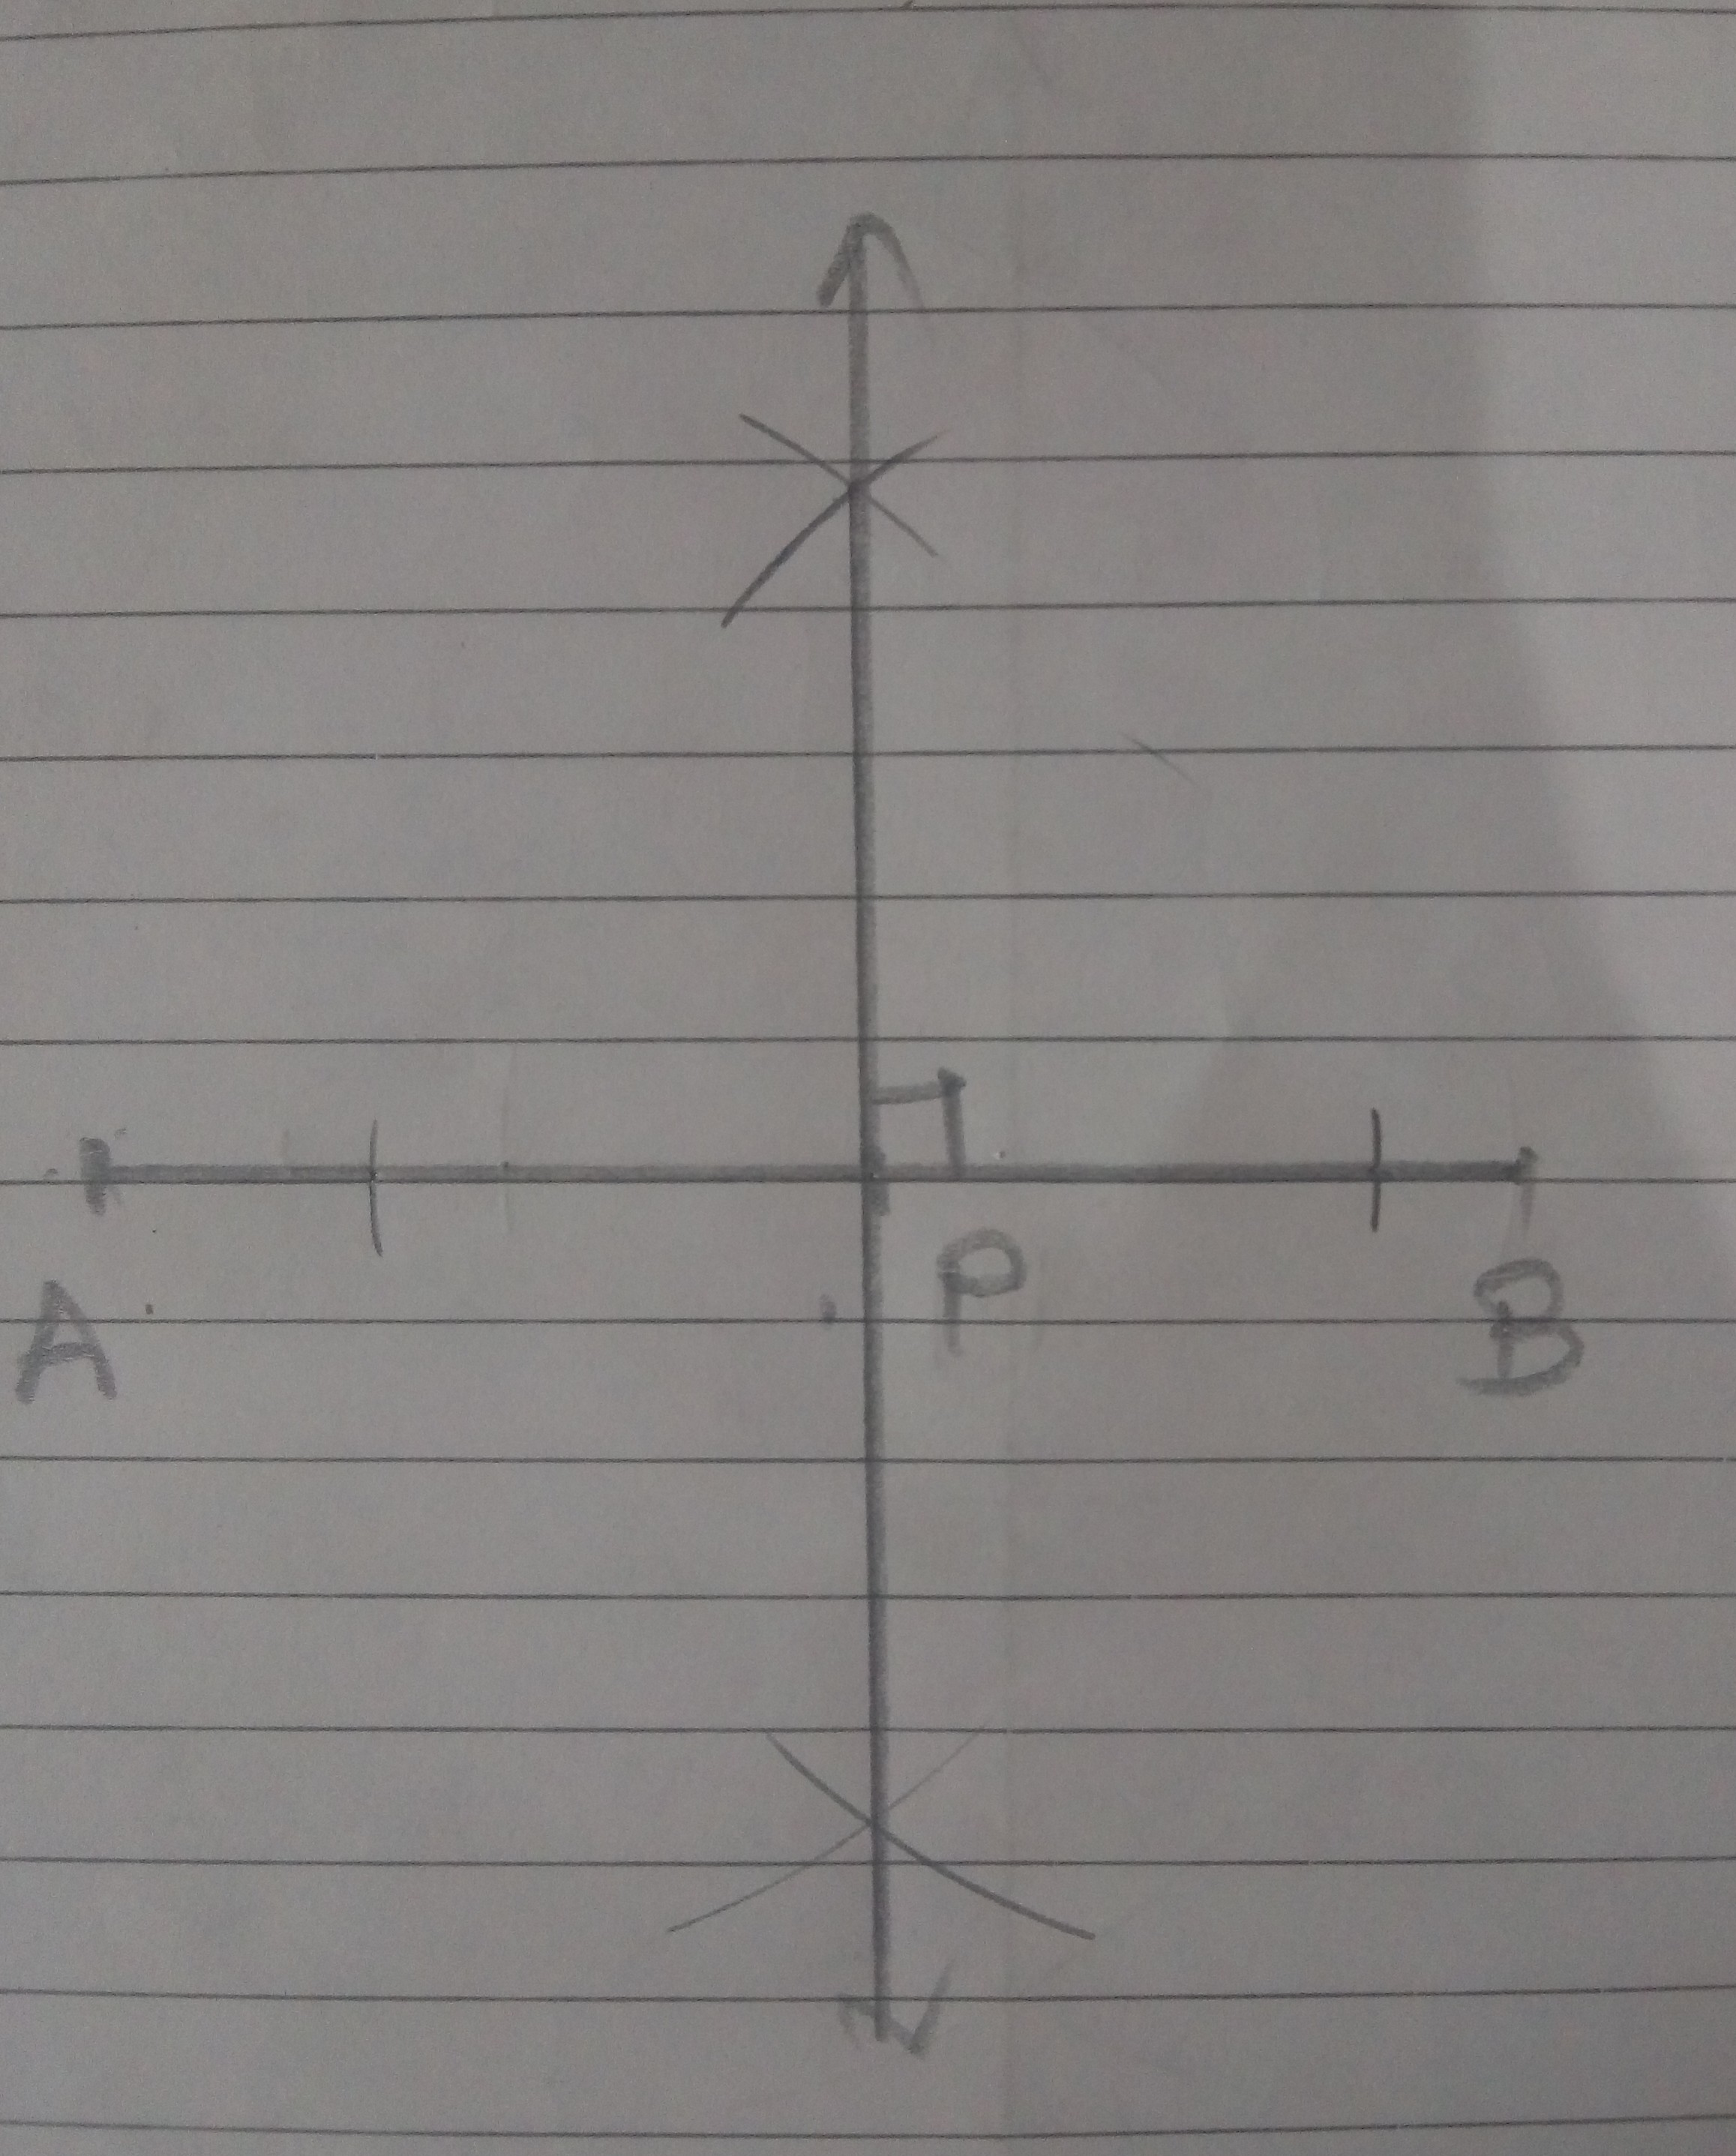 Draw A Line Segment Ab 8cm Mark A Point P On Ab Such That Ap 4 5 Cm